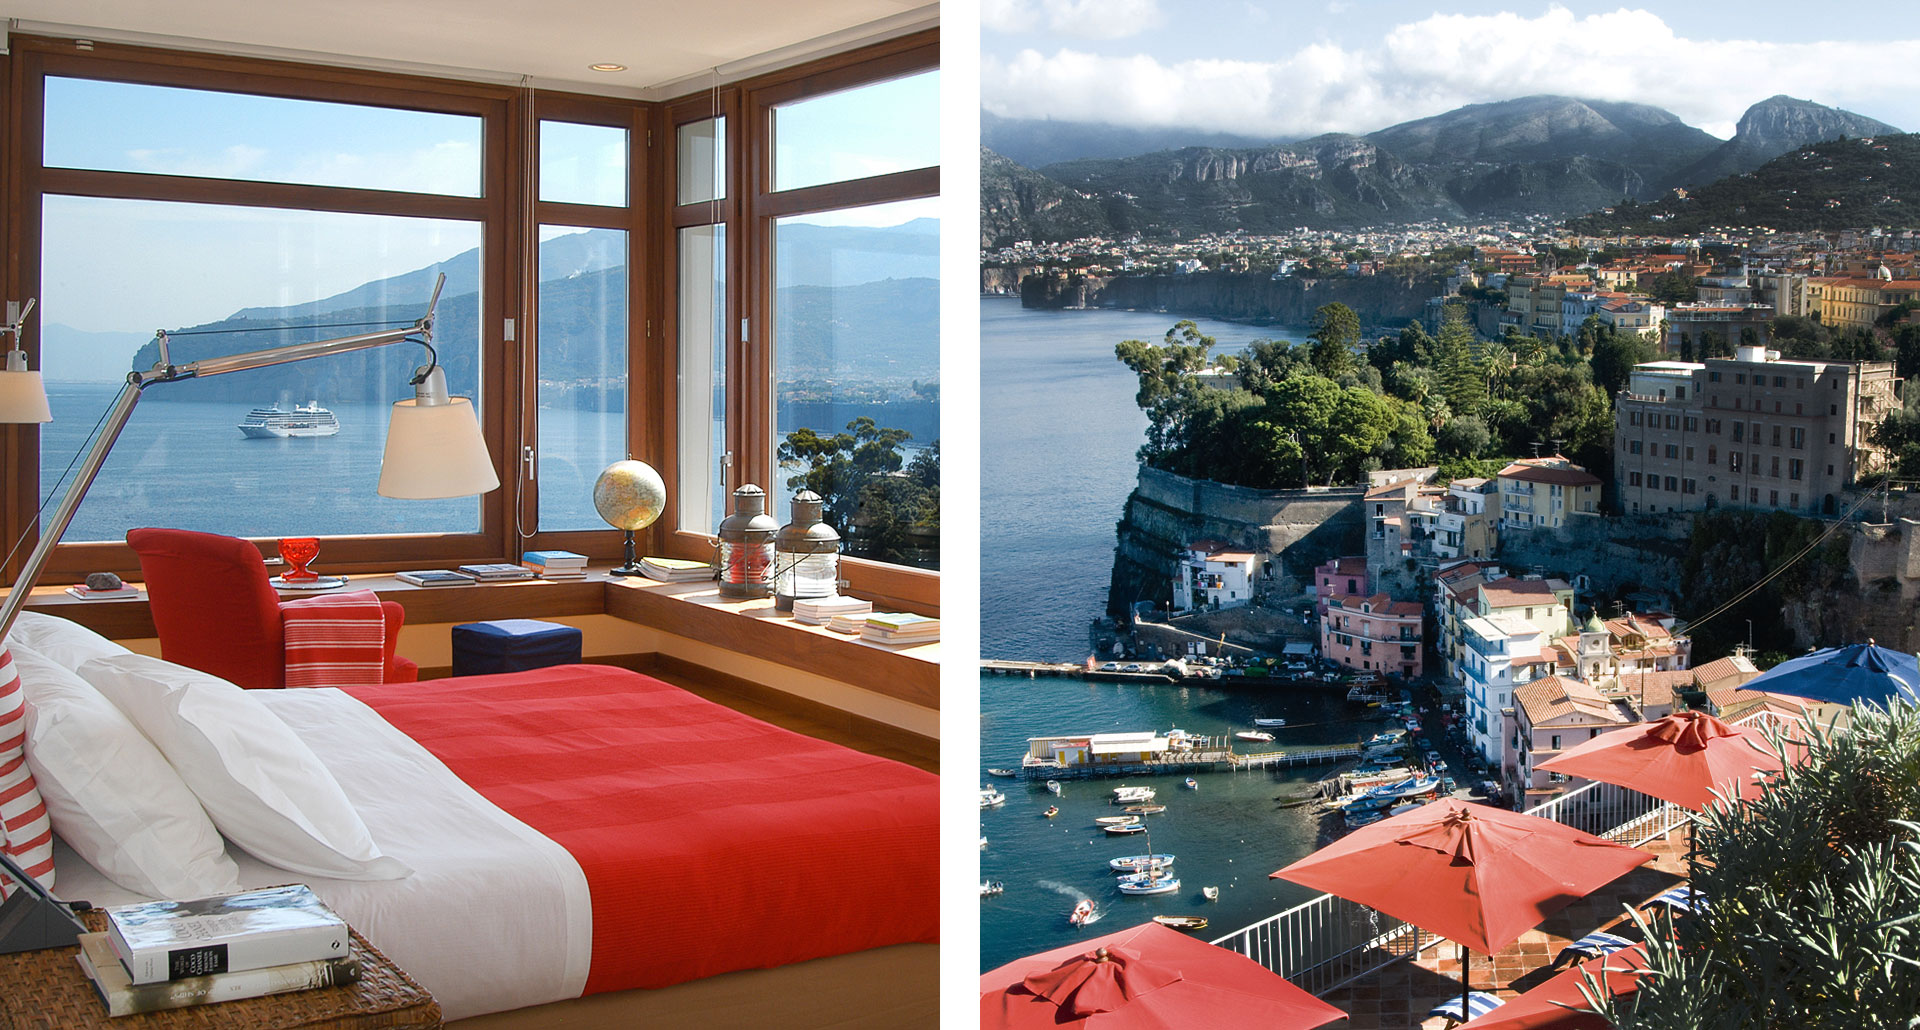 La Minervetta - boutique hotel in Sorrento